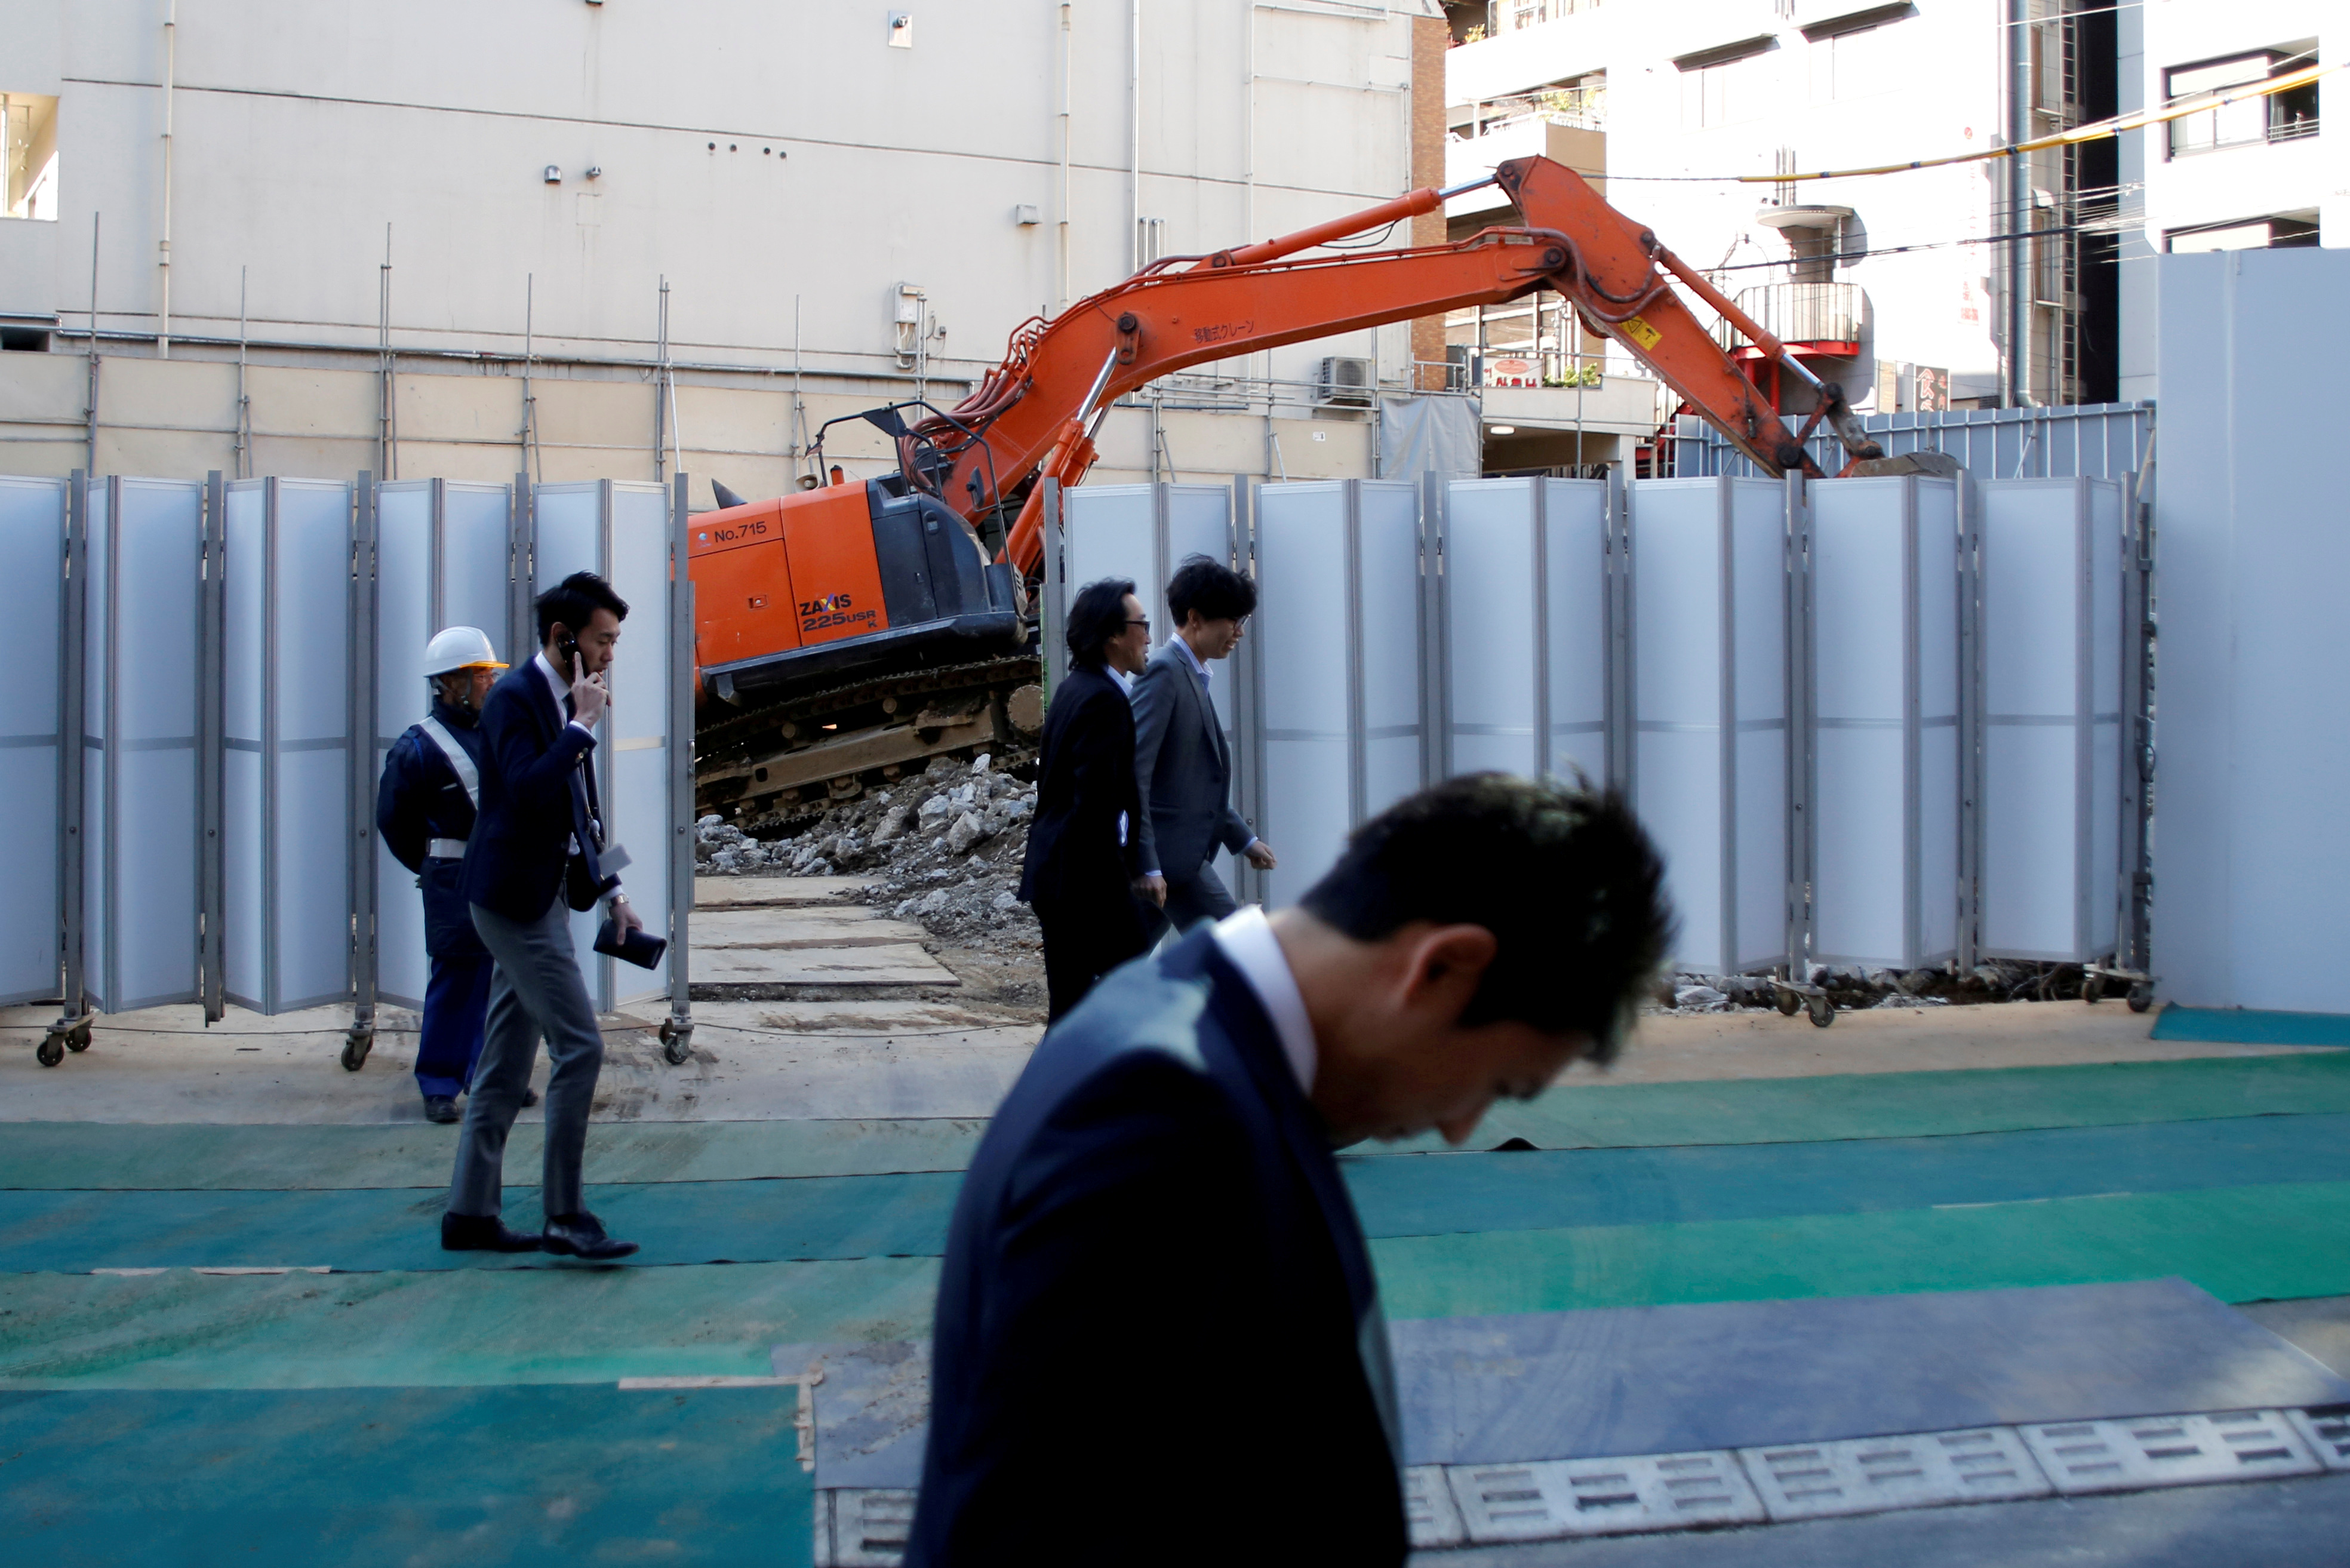 Businessmen walk past heavy machinery at a construction site in Tokyo's business district, Japan, January 16, 2017.    REUTERS/Toru Hanai/File Photo